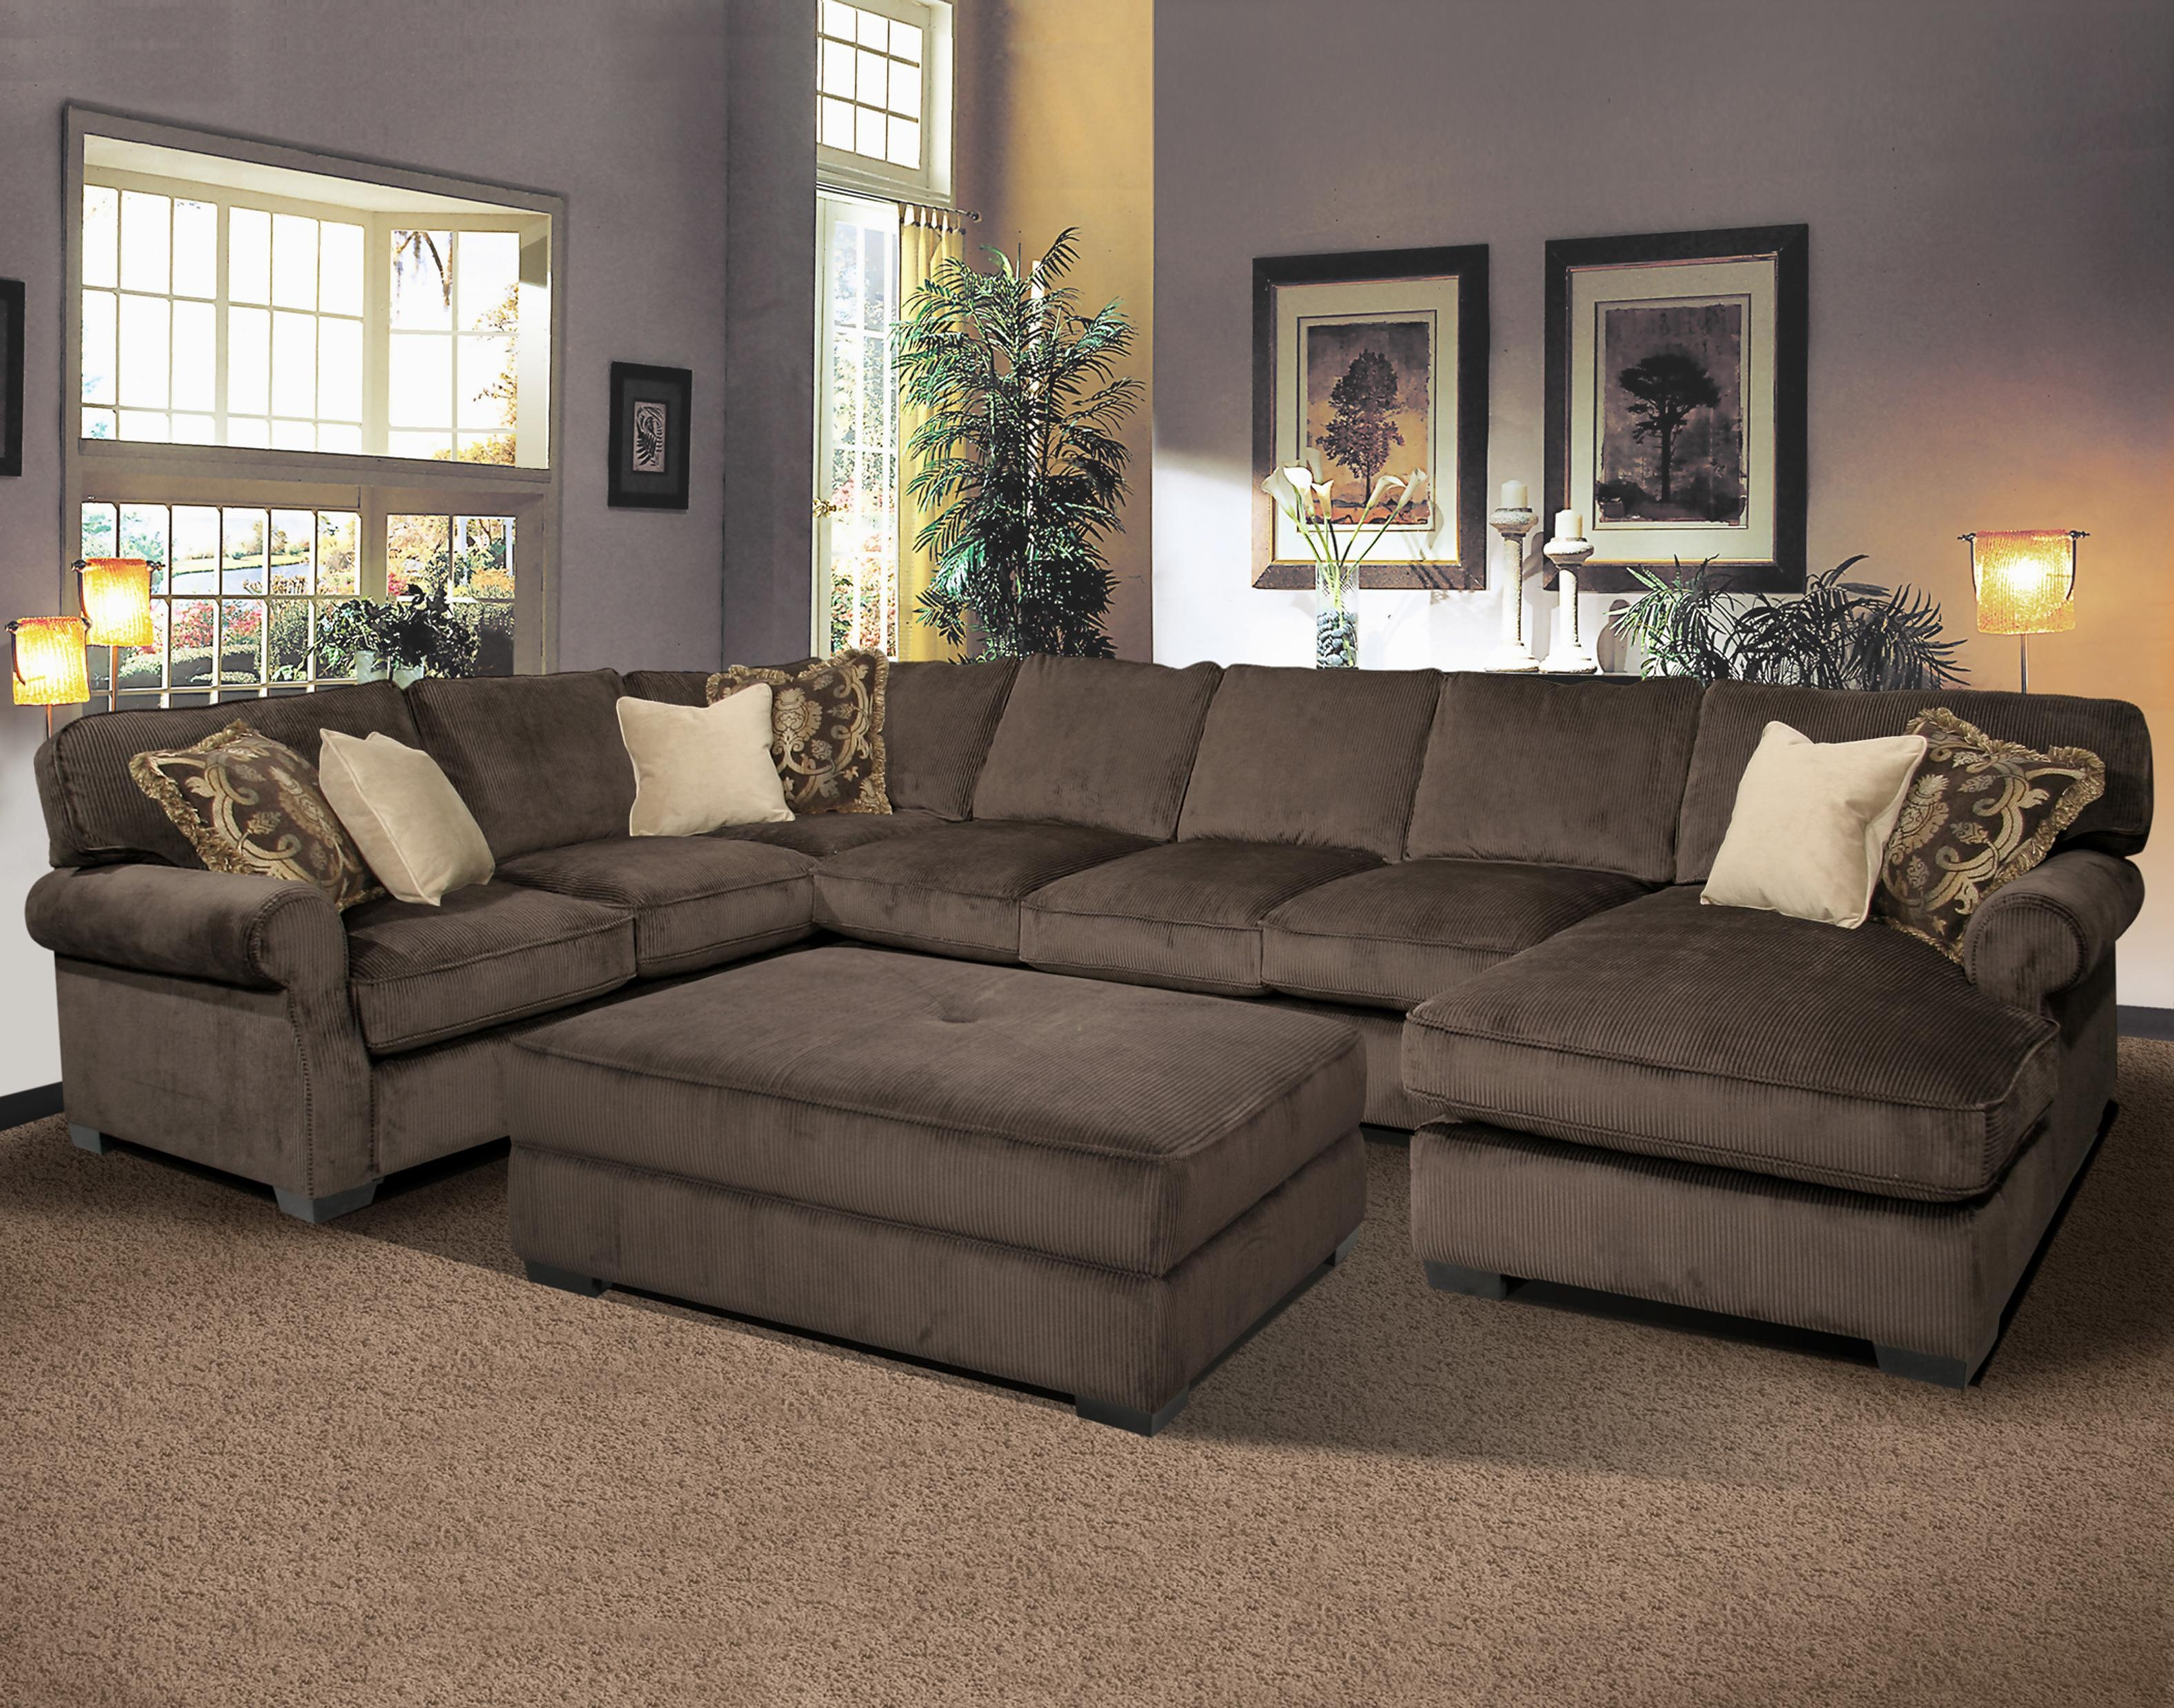 20 best large comfortable sectional sofas sofa ideas for Best sectional sofa